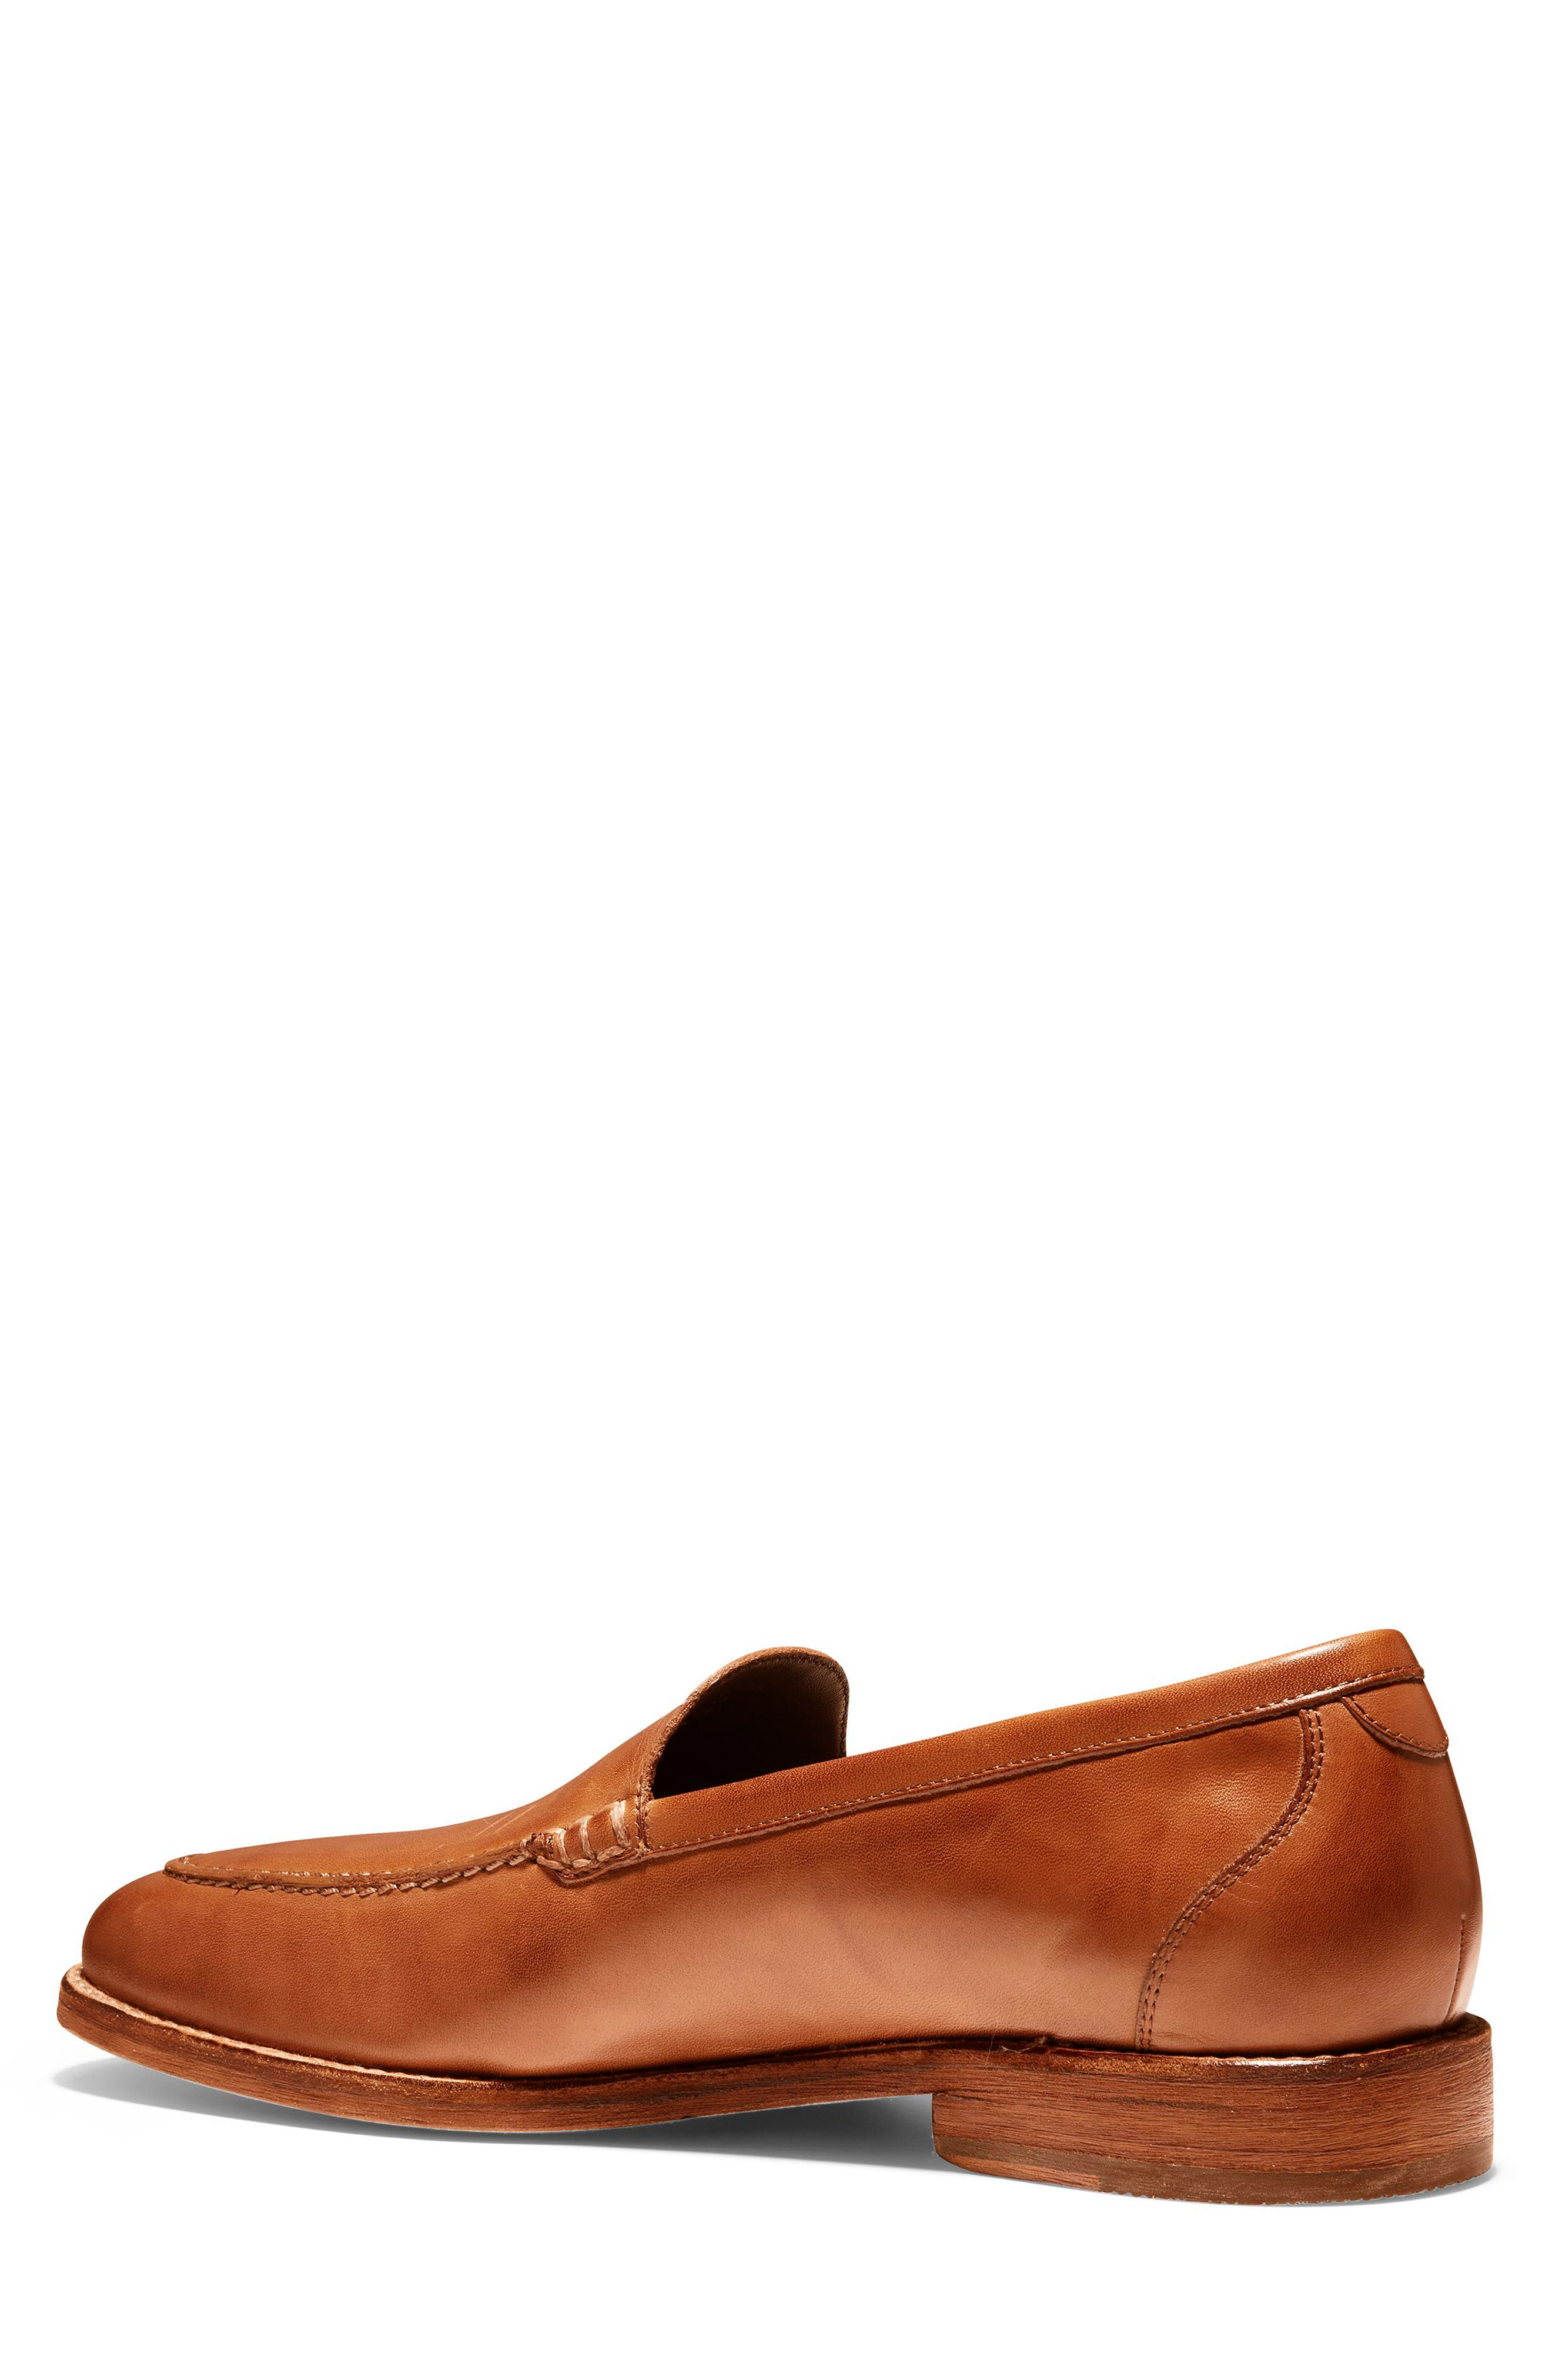 COLE HAAN, Feathercraft Grand Venetian Loafer, Alternate thumbnail 2, color, BRITISH TAN LEATHER